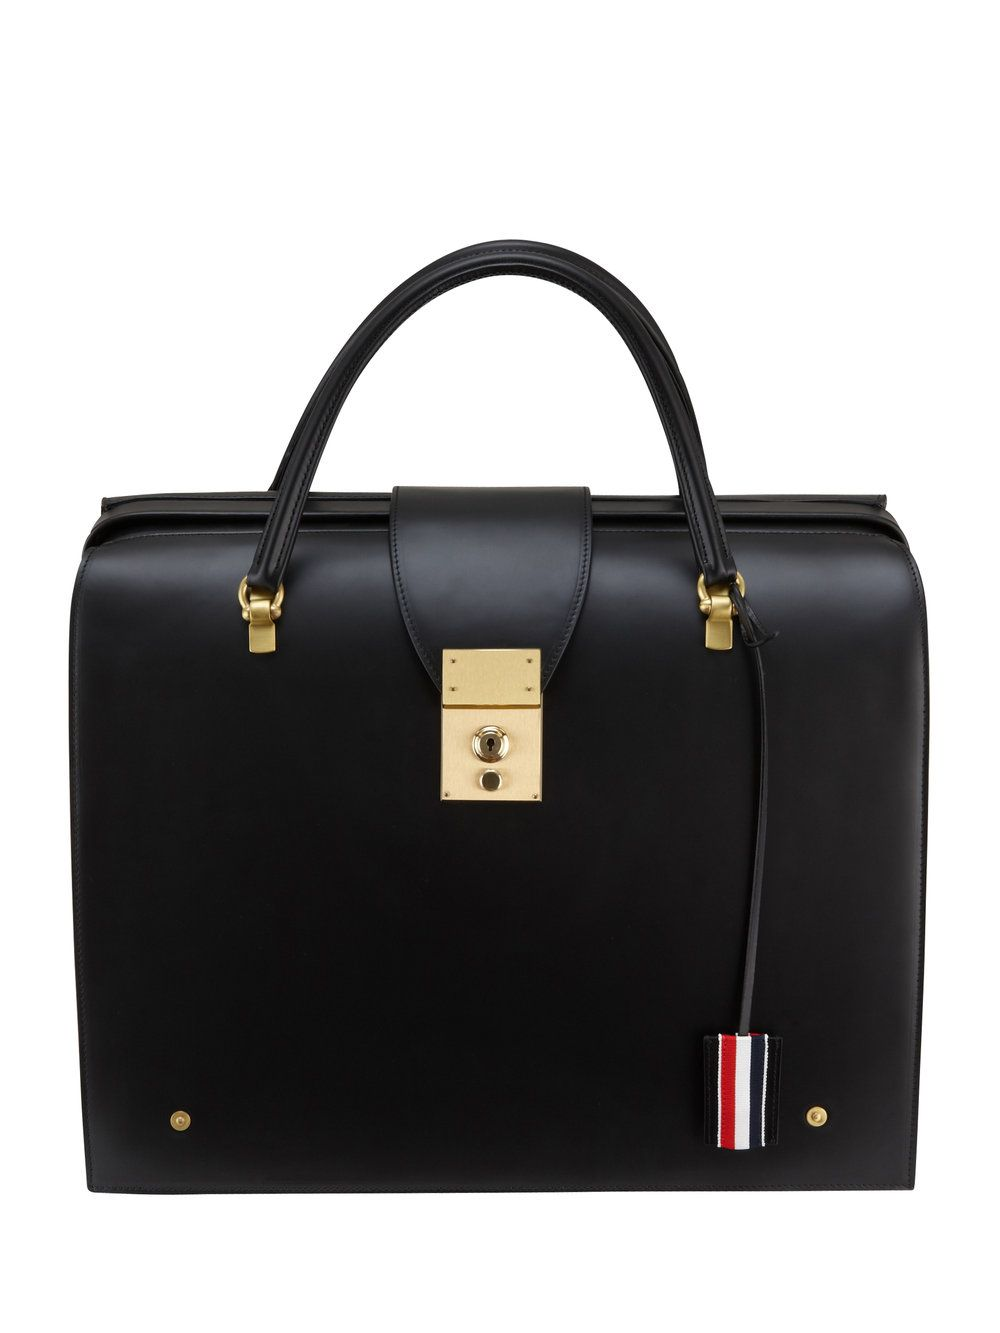 114bed440a COME ON | Handbags | Bags, Thom browne, Bag Accessories